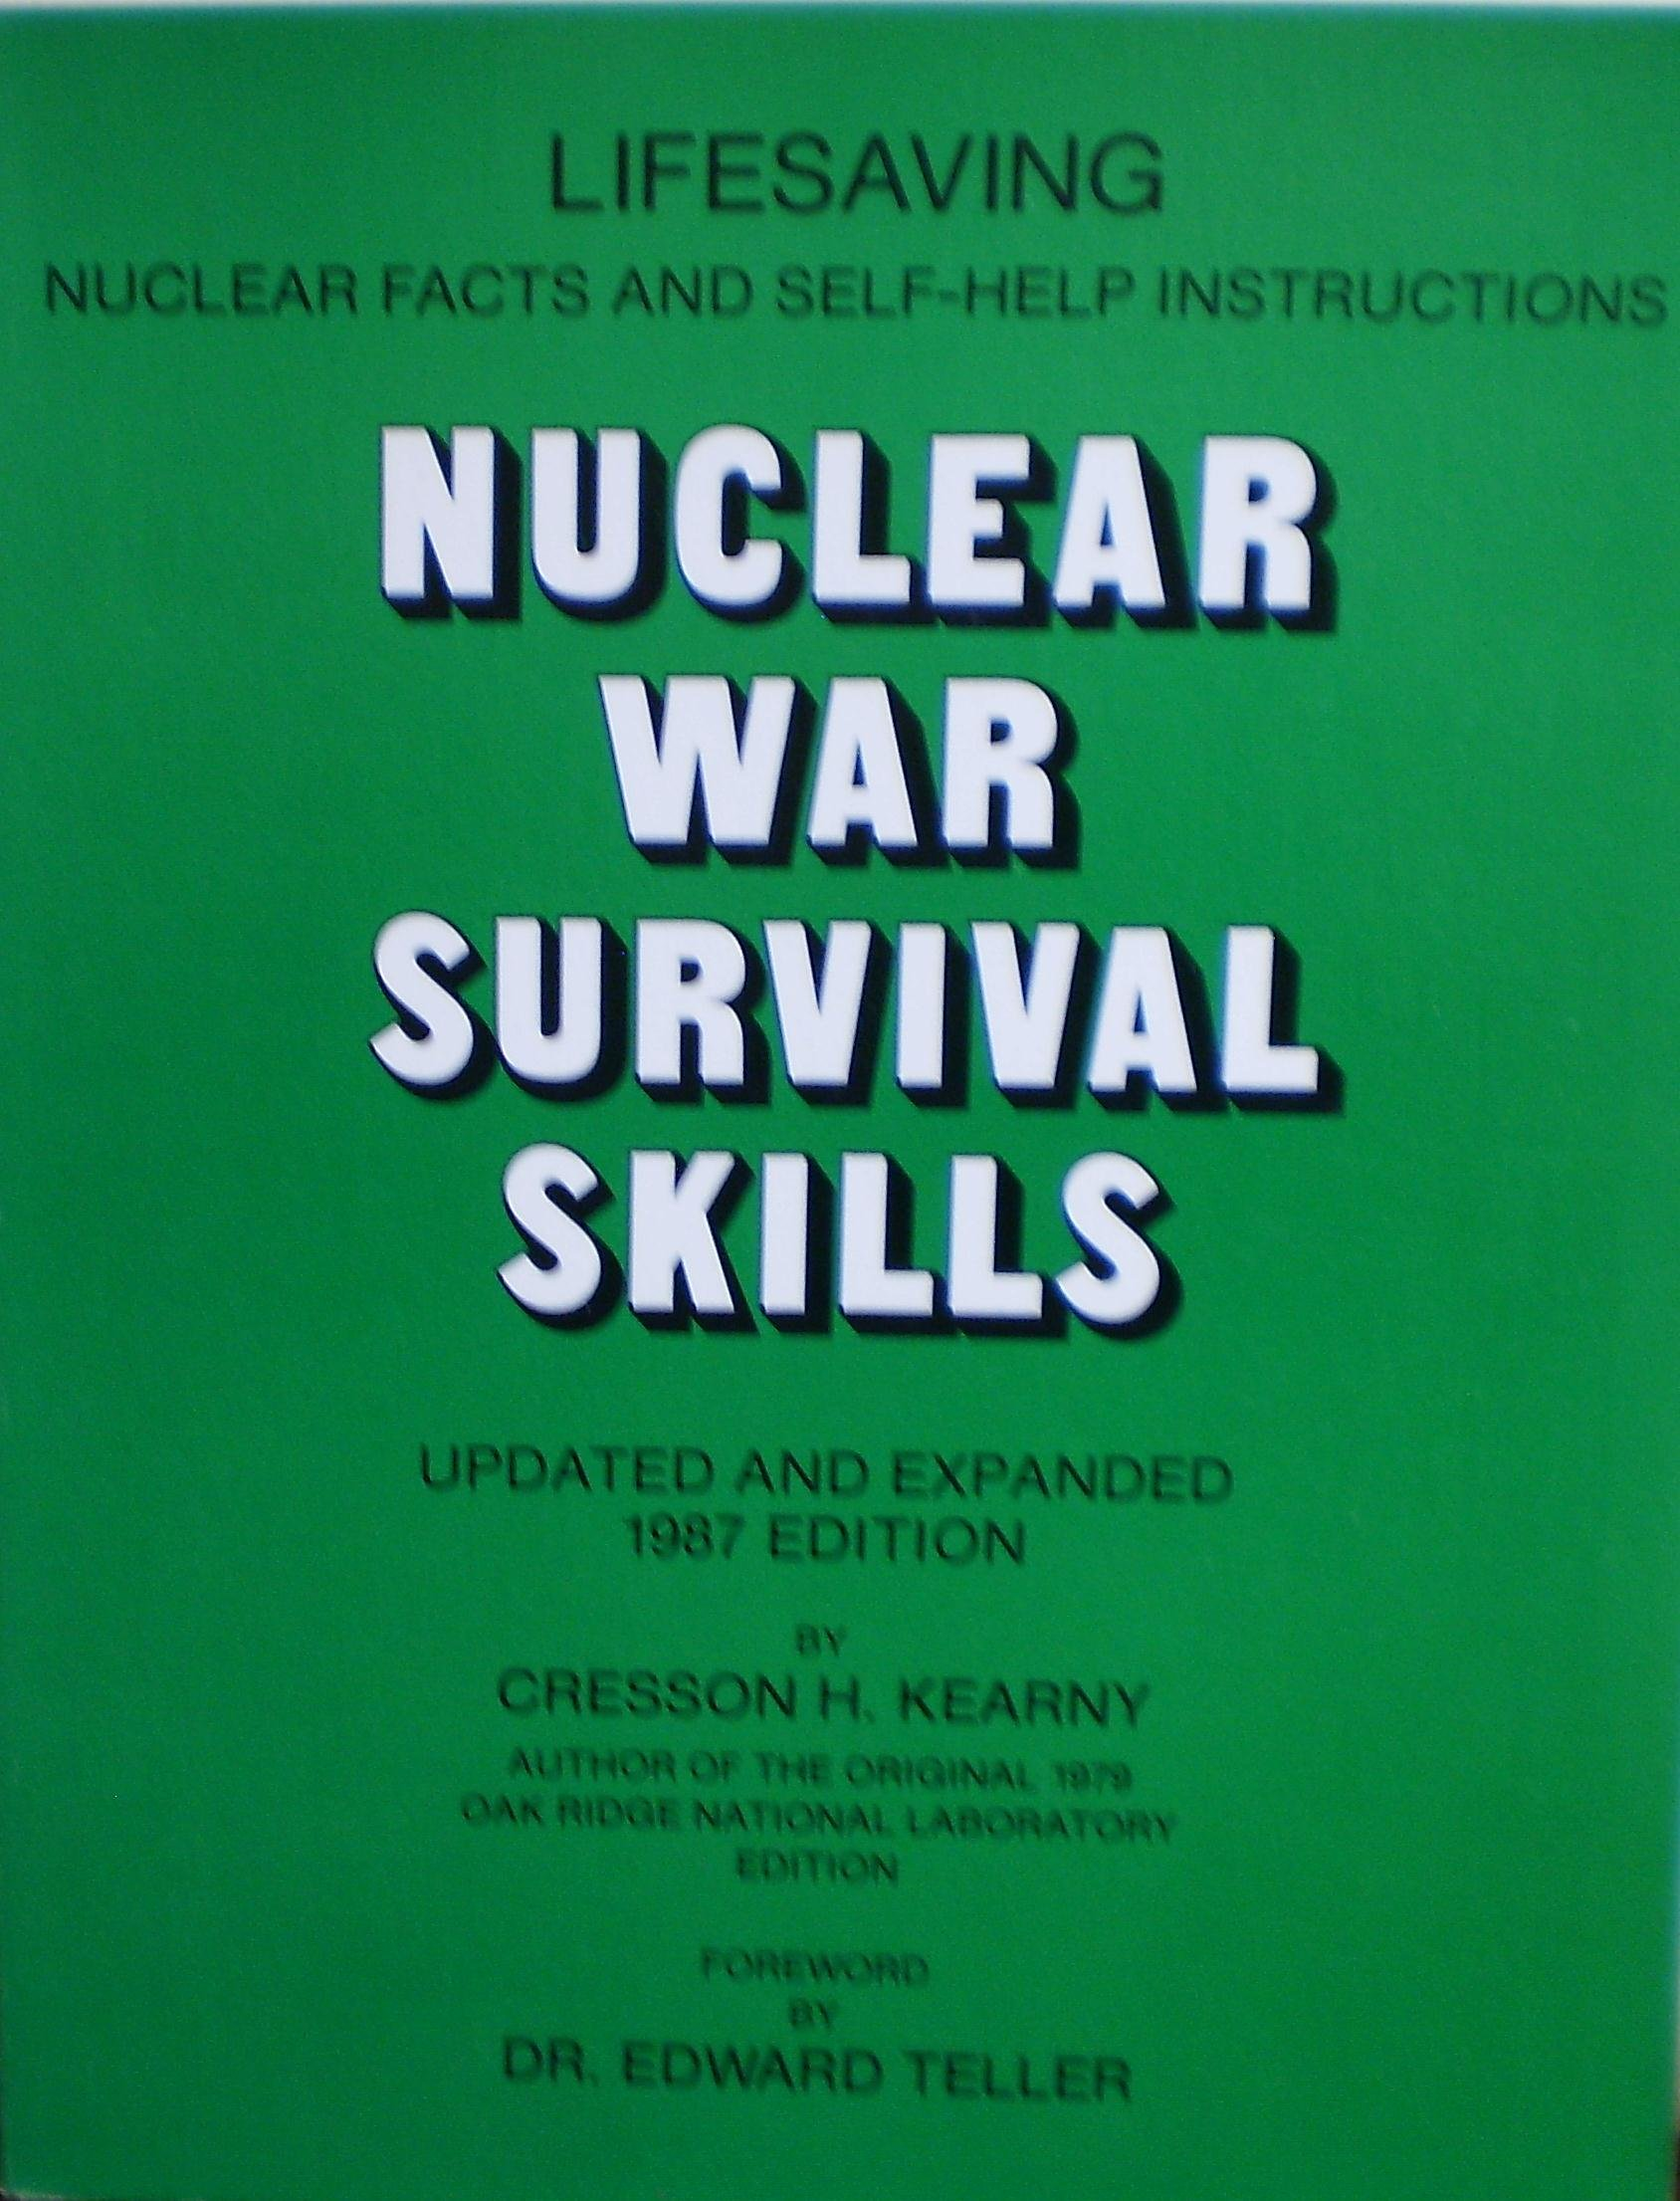 Nuclear War Survival Skills: Updated and Expanded 1987 Edition, Kearny, Cresson H.